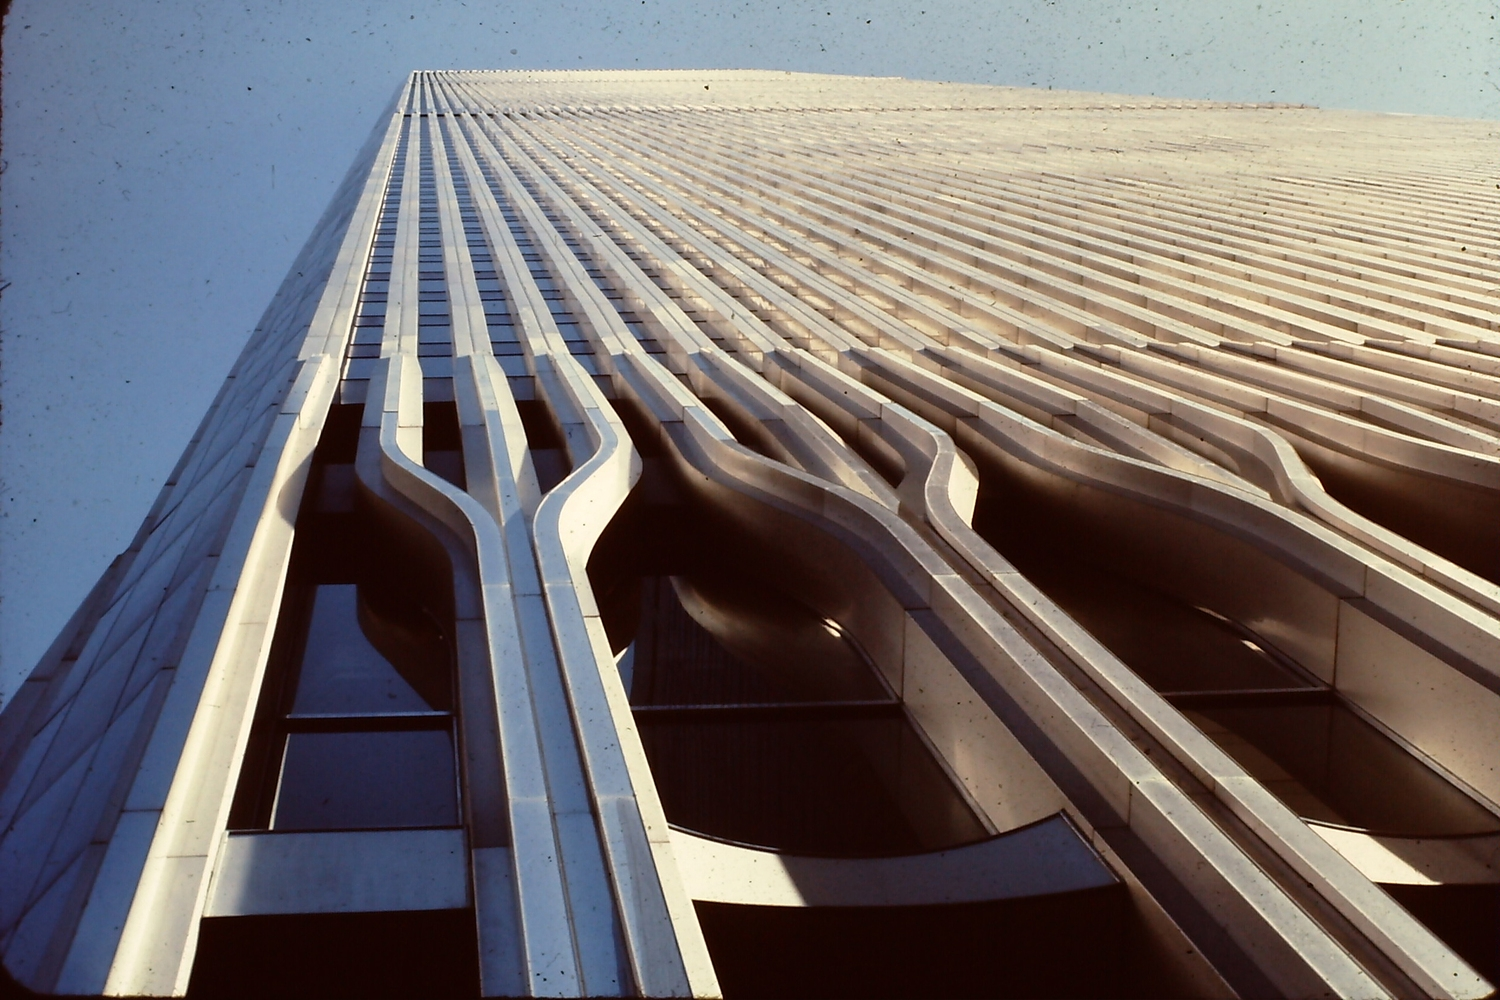 World Trade Centre 1986 | The original World Trade Center was designed by Minoru Yamasaki in the early 1960s using a tube-frame structural design for the twin 110-story towers. In gaining approval for the project, the Port Authority of New York and New Jersey agreed to take over the Hudson & Manhattan Railroad which became the Port Authority Trans-Hudson (PATH). Groundbreaking for the World Trade Center took place on August 5, 1966. The North Tower  was completed in December 1970 and the South Tower was finished in July 1971. Construction of the World Trade Center involved excavating a large amount of material which was used in making Battery Park City on the west side of Lower Manhattan.